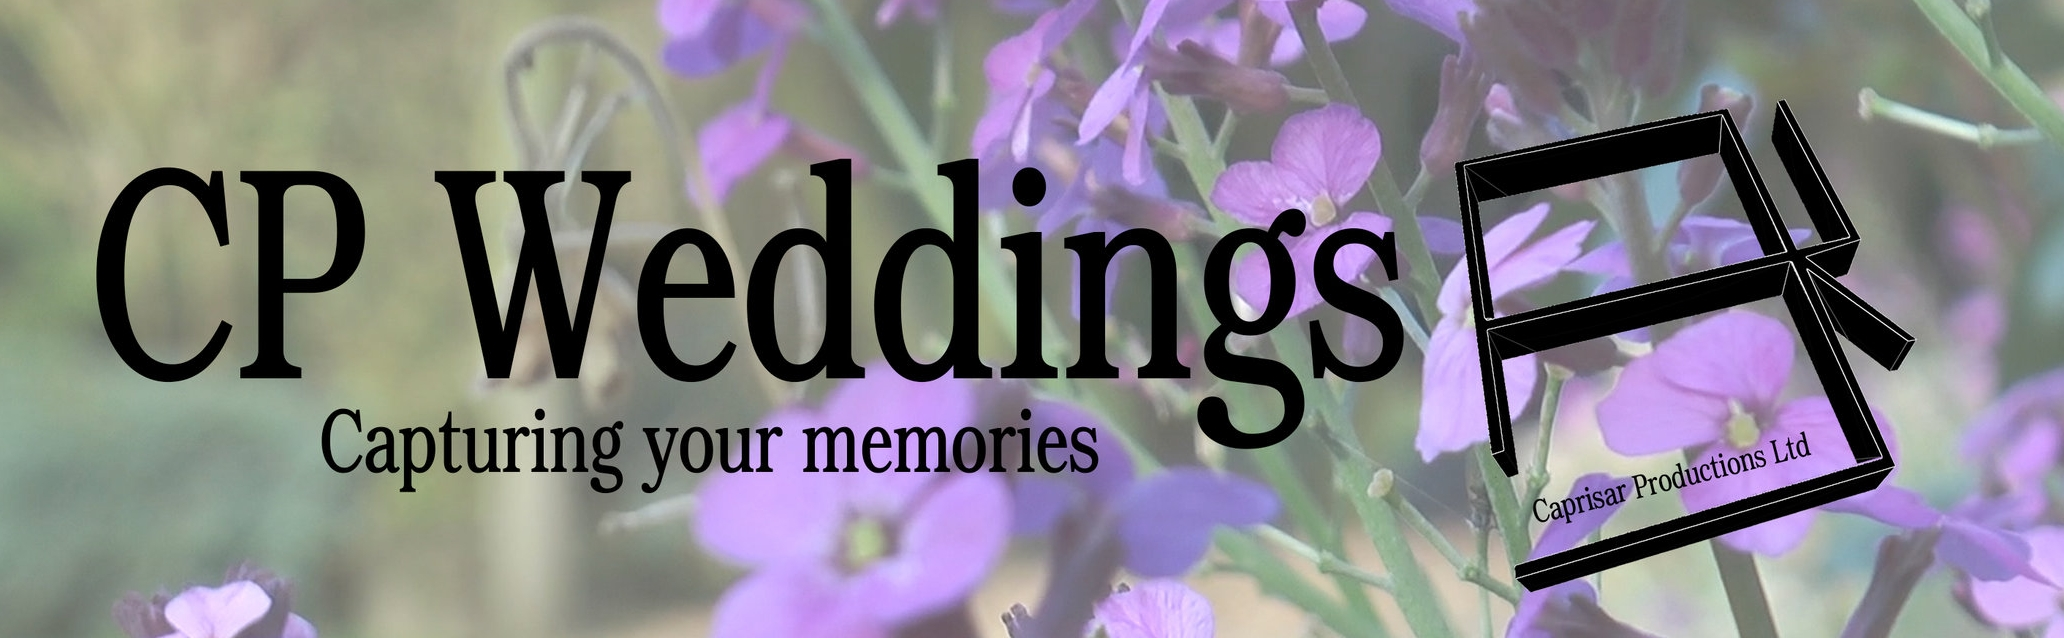 CP Weddings Banner cropped w background.jpg